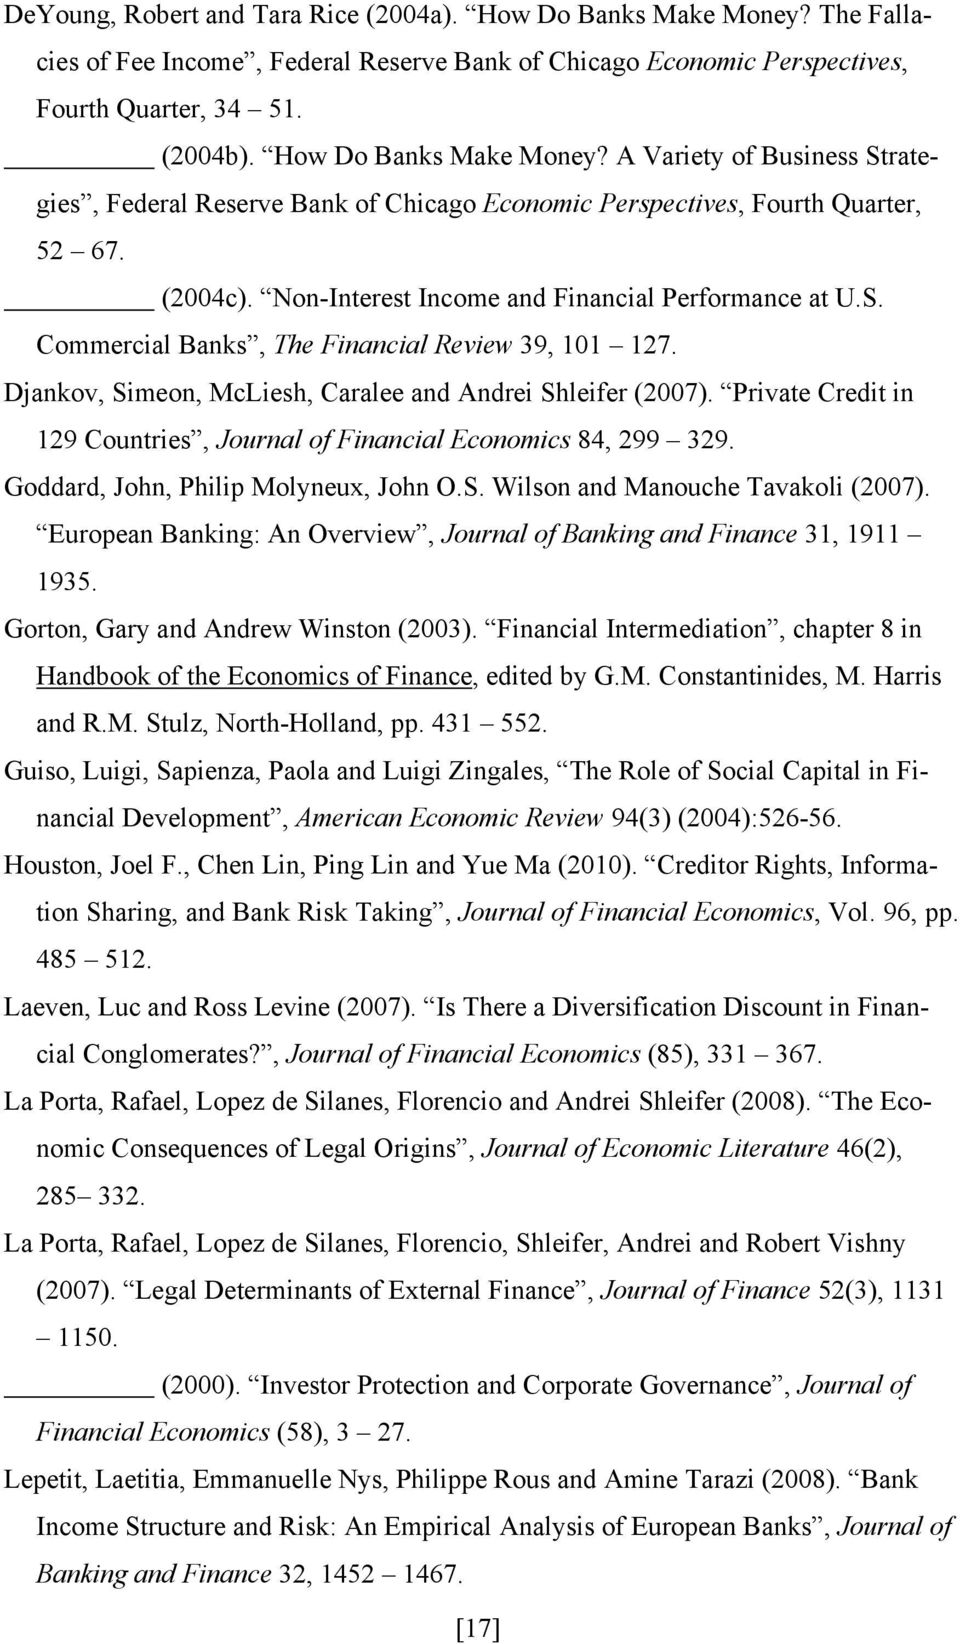 Djankov, Simeon, McLiesh, Caralee and Andrei Shleifer (2007). Private Credit in 129 Countries, Journal of Financial Economics 84, 299 329. Goddard, John, Philip Molyneux, John O.S. Wilson and Manouche Tavakoli (2007).